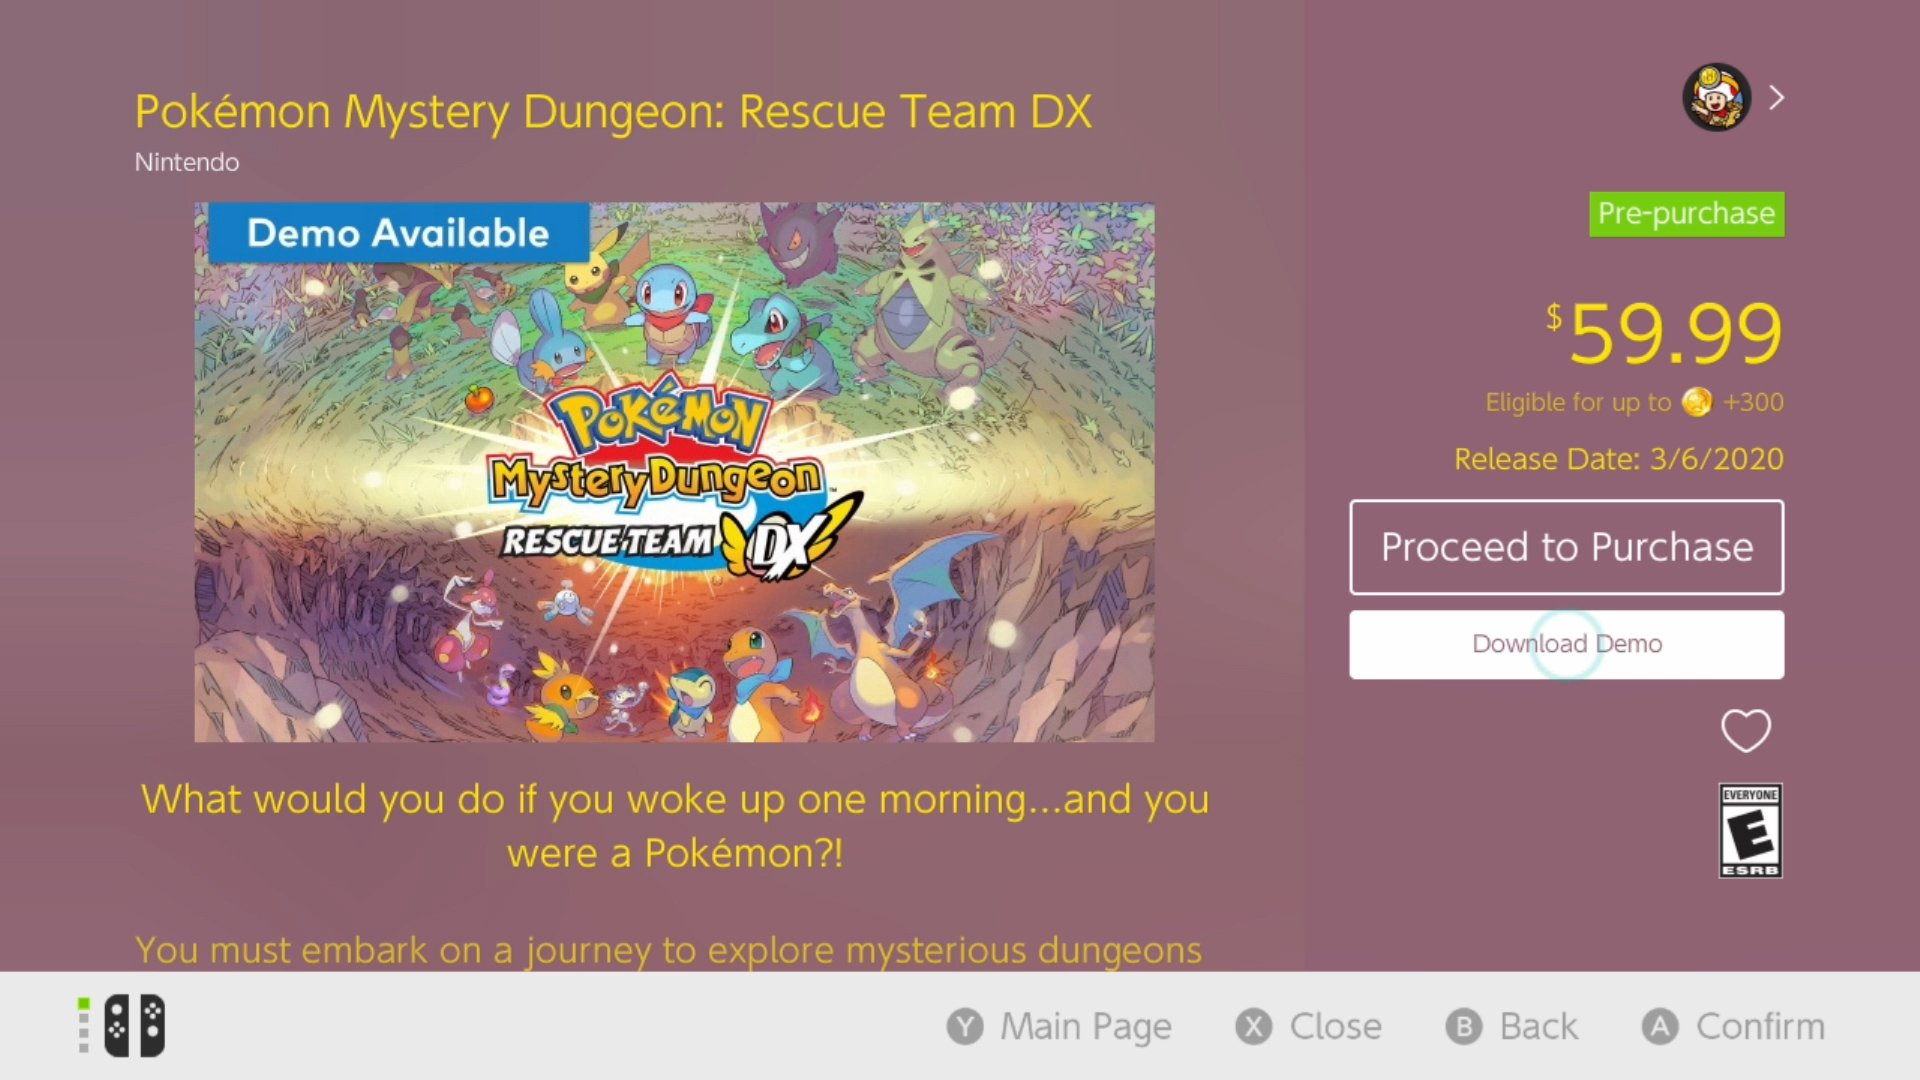 How to download the Pokemon Mystery Dungeon Rescue Team DX demo